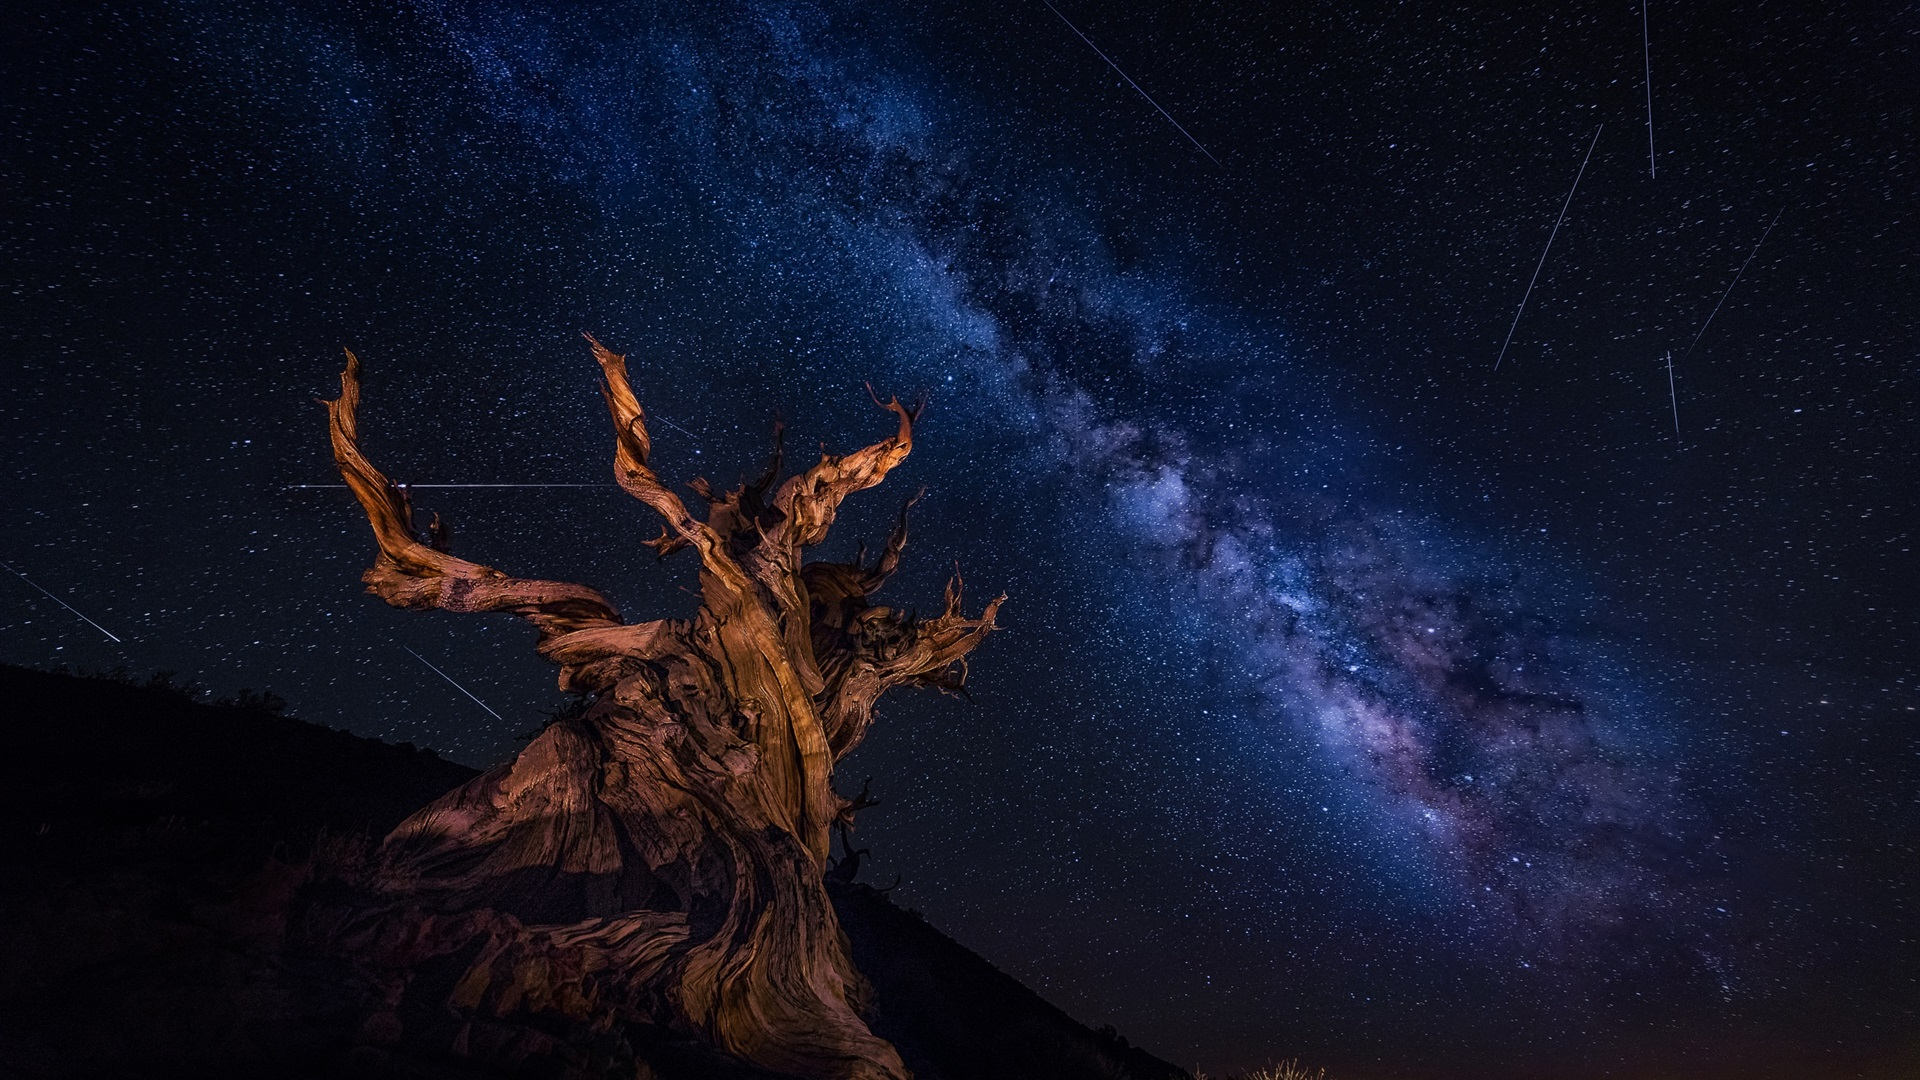 Wallpaper Dry Tree Starry Sky Beautiful Night 1920x1440